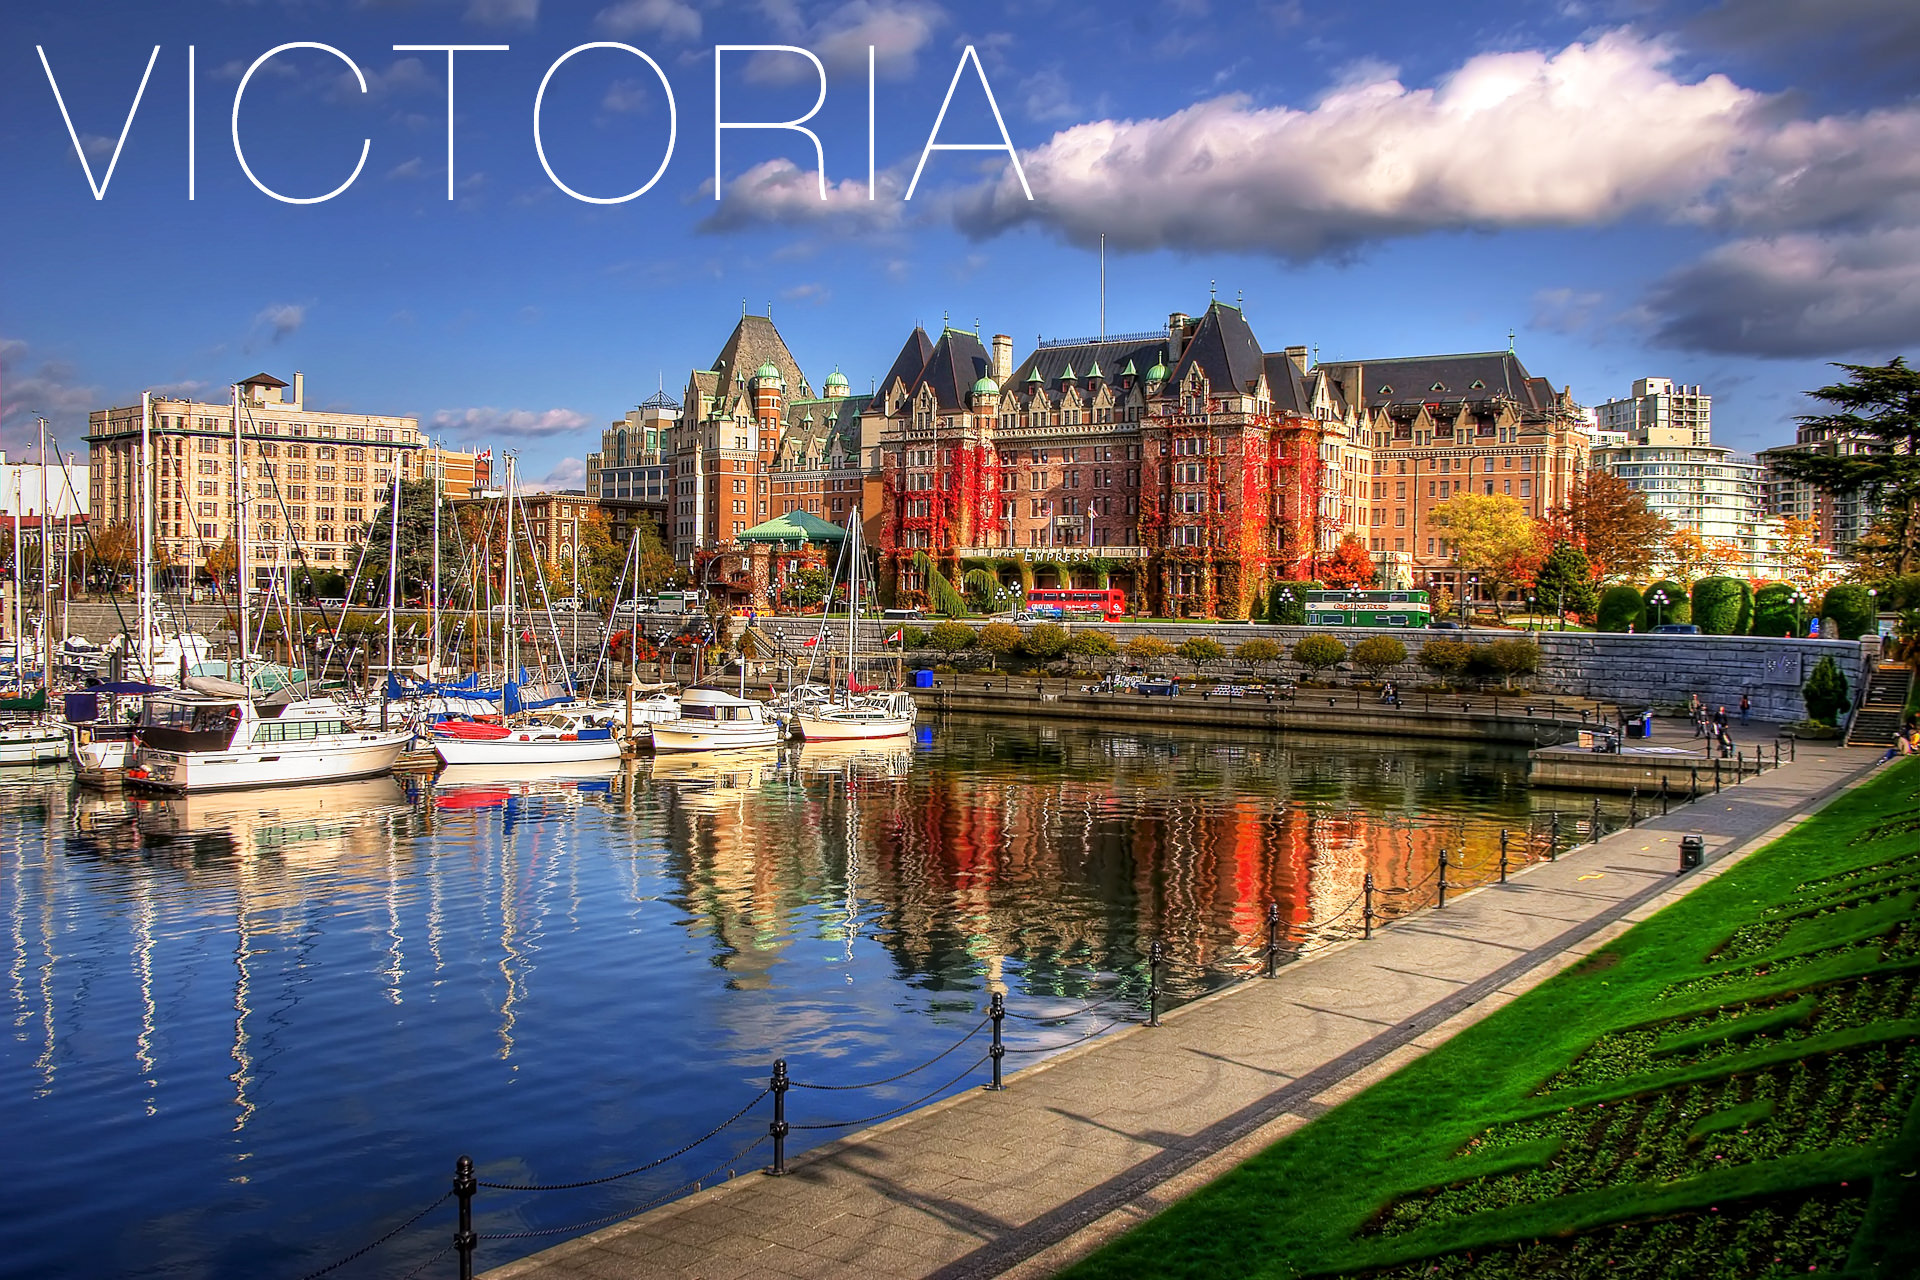 Study English in Victoria, Canada at Global Village English.